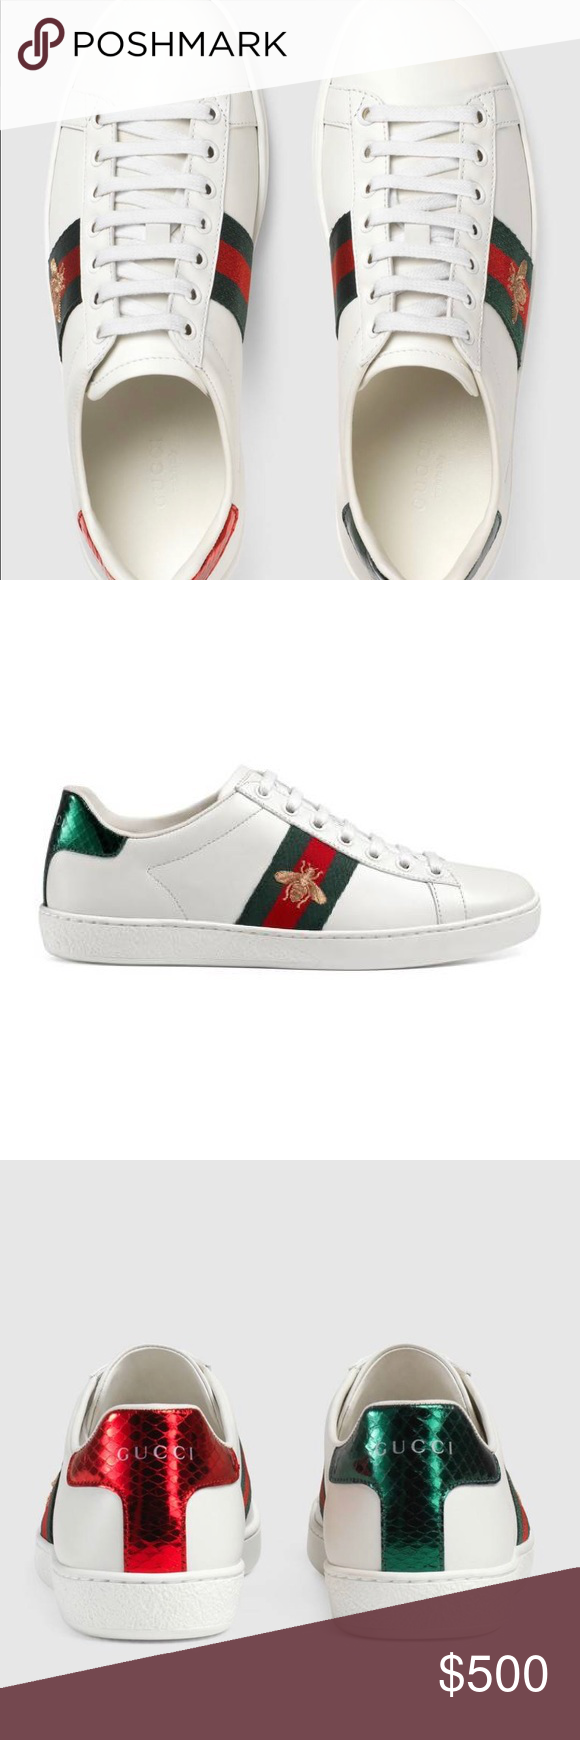 78faba61836 GUCCI ACE EMBROIDERED SNEAKER White leather with green and red web  grosgrain side detail with gold bee embroidery. Size 9 in women s.